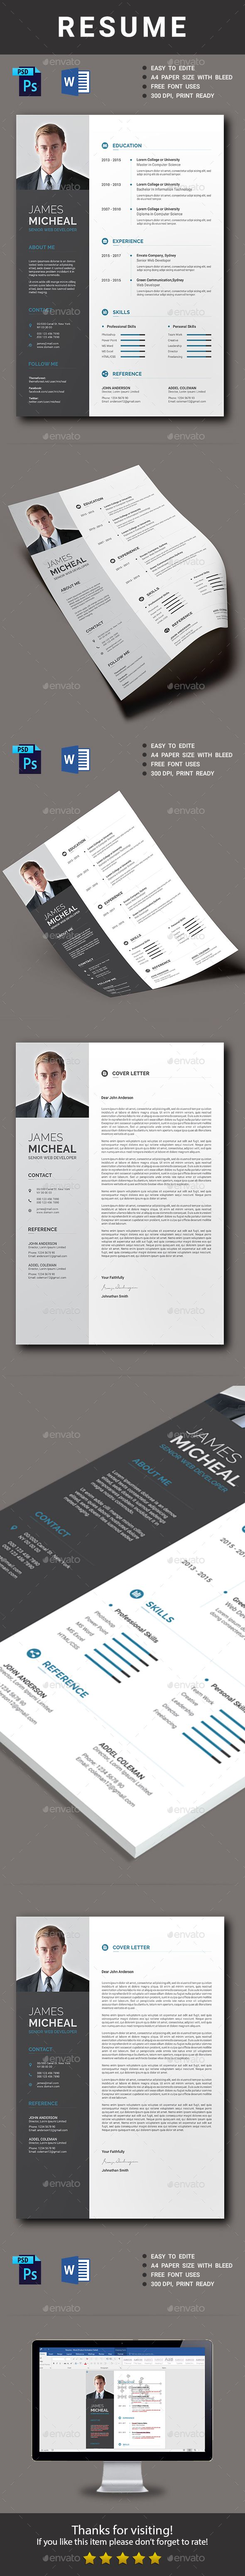 Resume Ai illustrator Template and